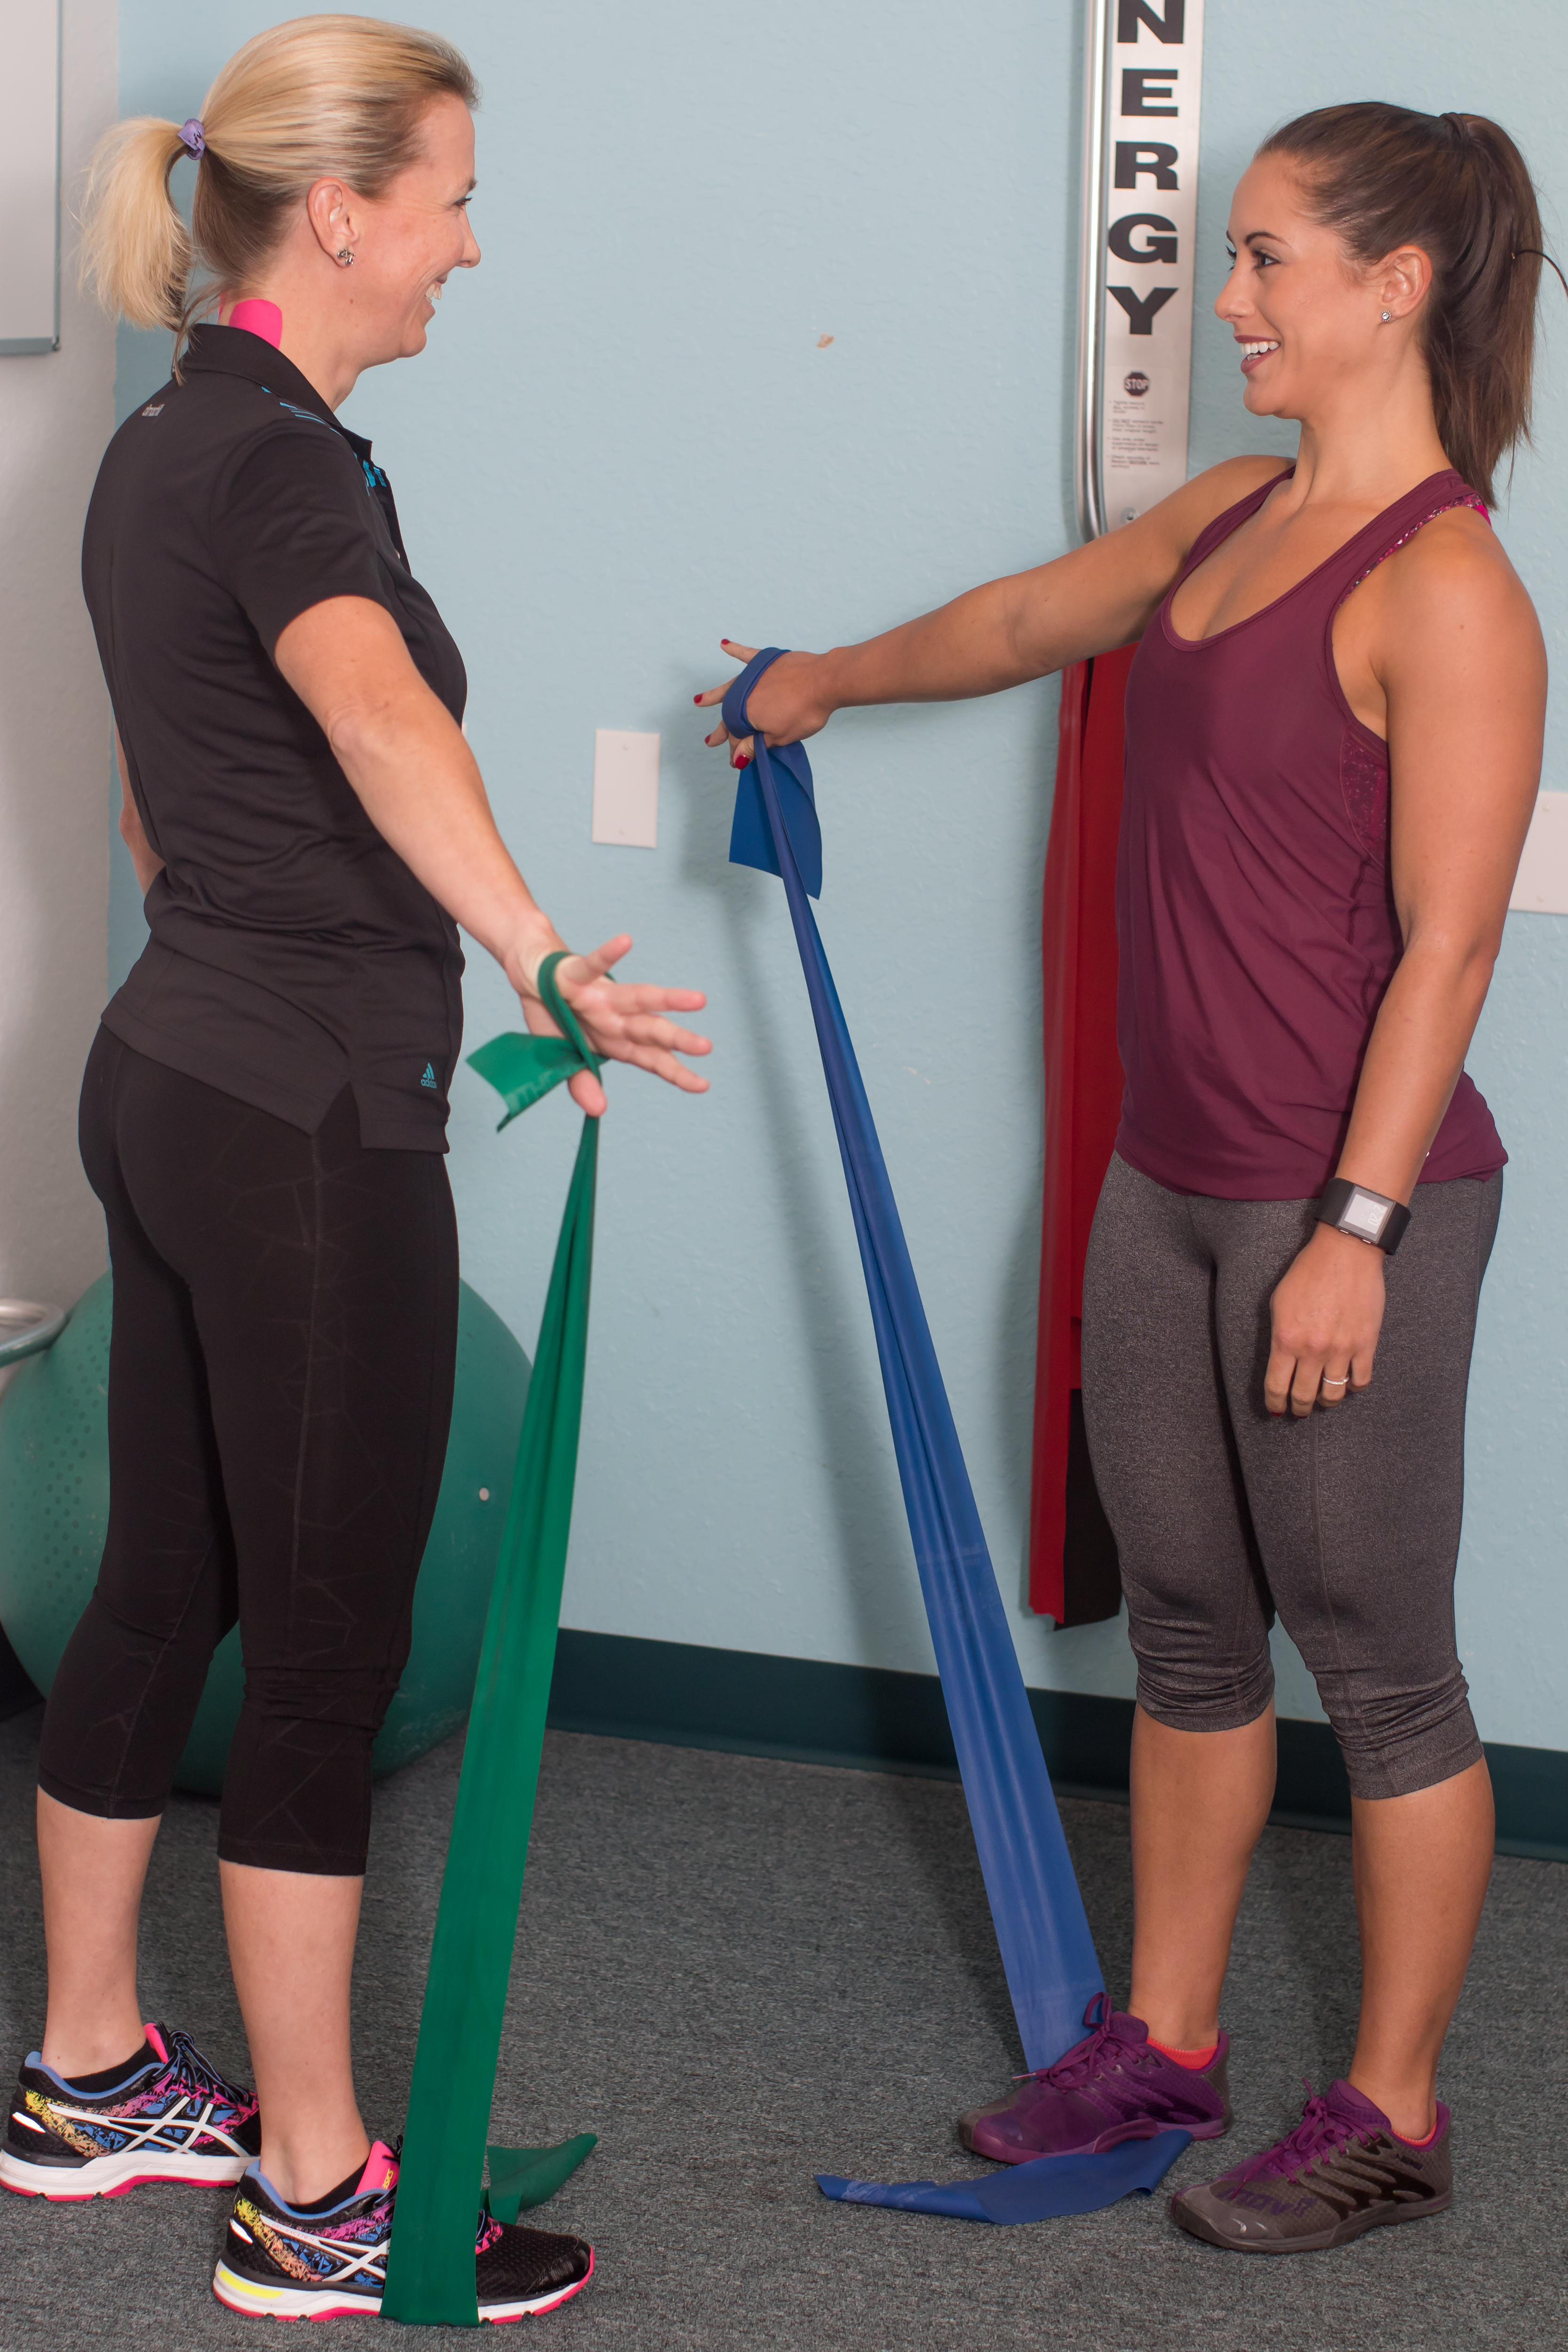 athlete woman getting physical rehab at Buchanan Health Center in Leesburg